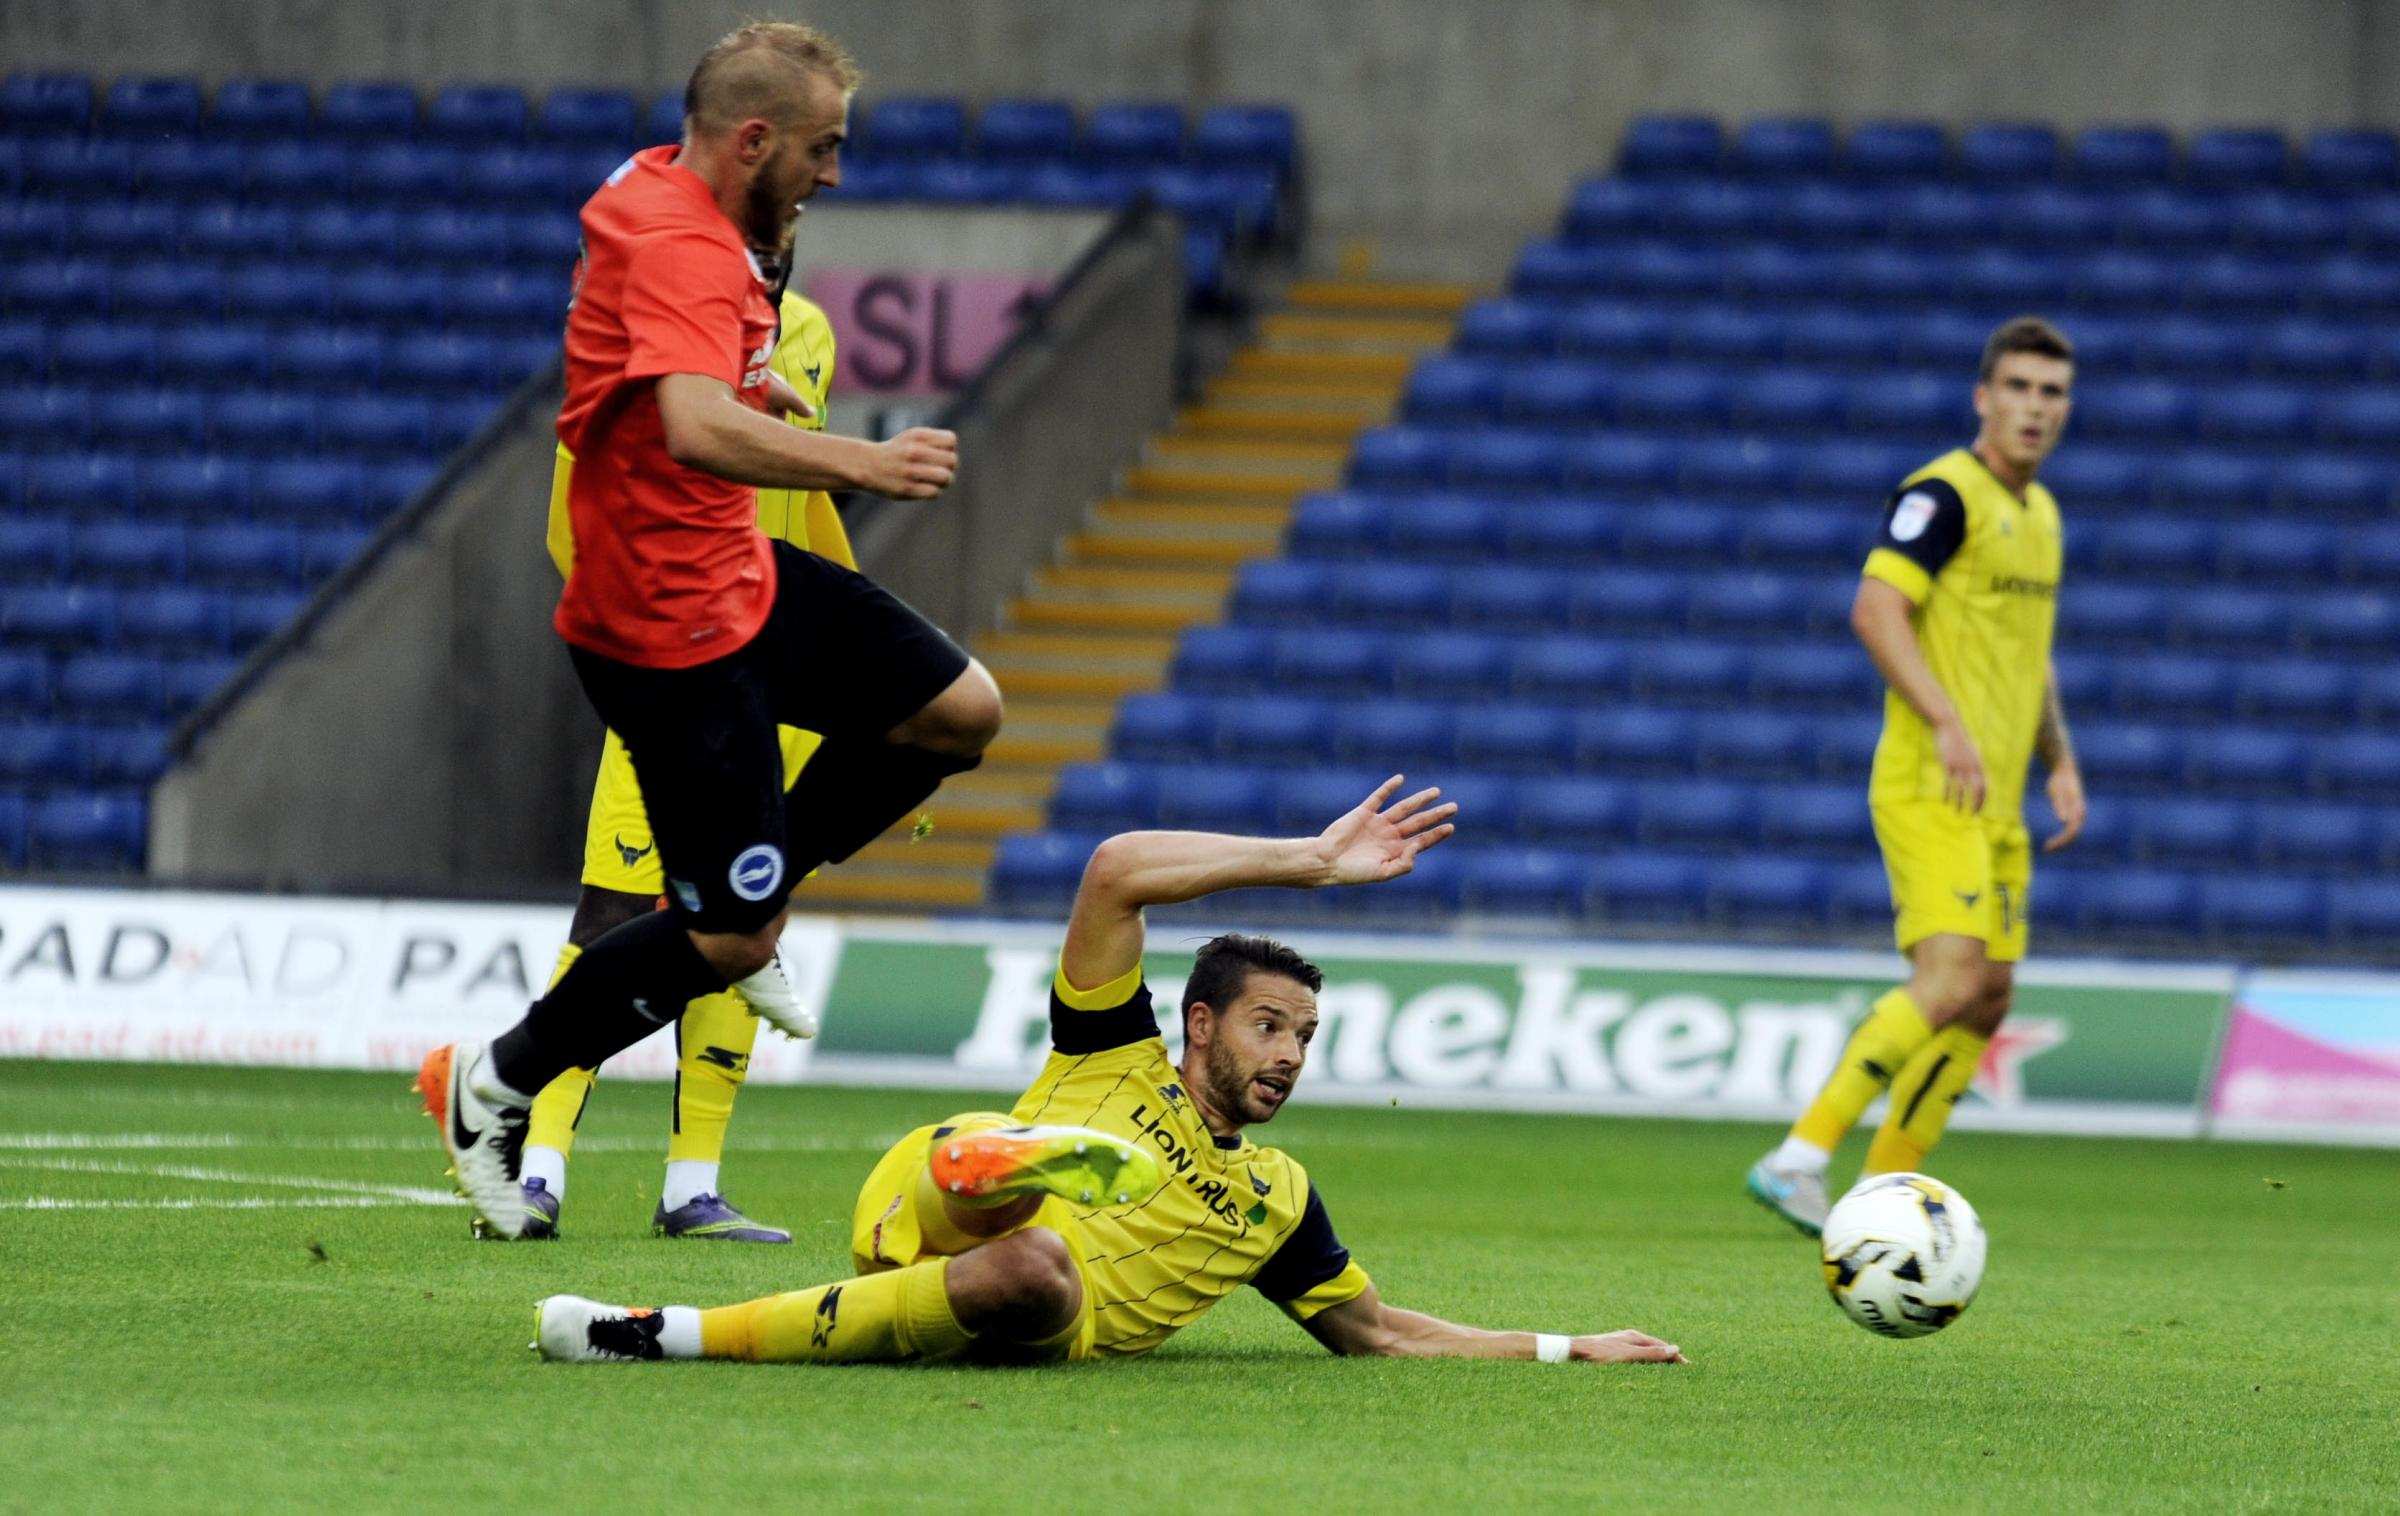 Oxford United's Aaron Martin slides in to clear from Brighton's Jiri Skalak in the first half